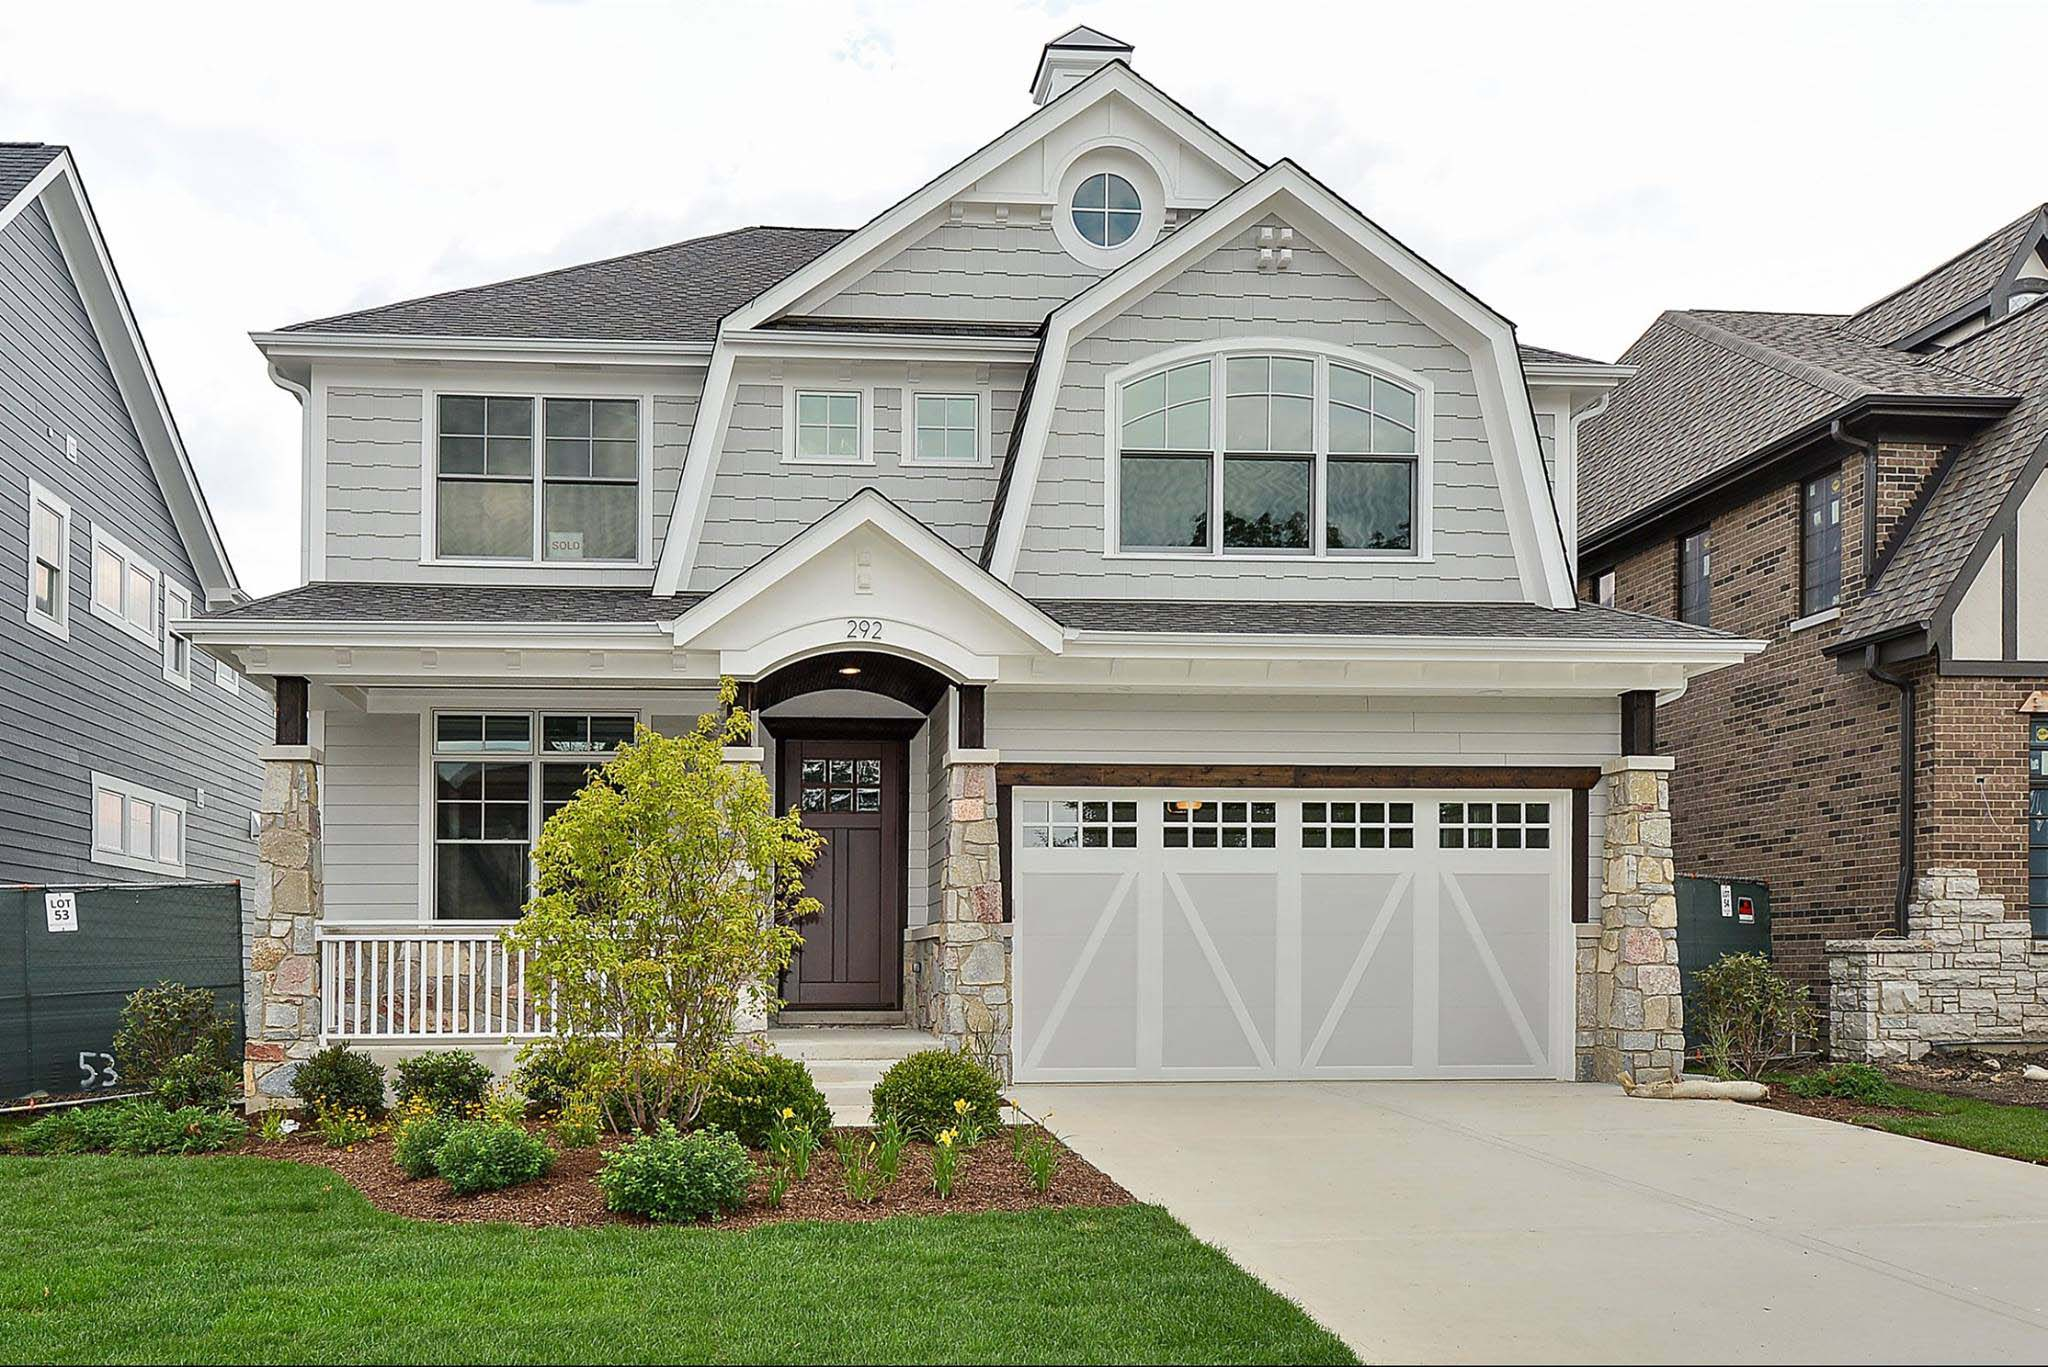 Light gray siding colors with white trim and wall paneling. Dark brown front door. Light brown stone veneer. Concrete driveway and porch. White railings. White and gray garage doors. Dark brown wood stained porch soffit. Black shingled roof.